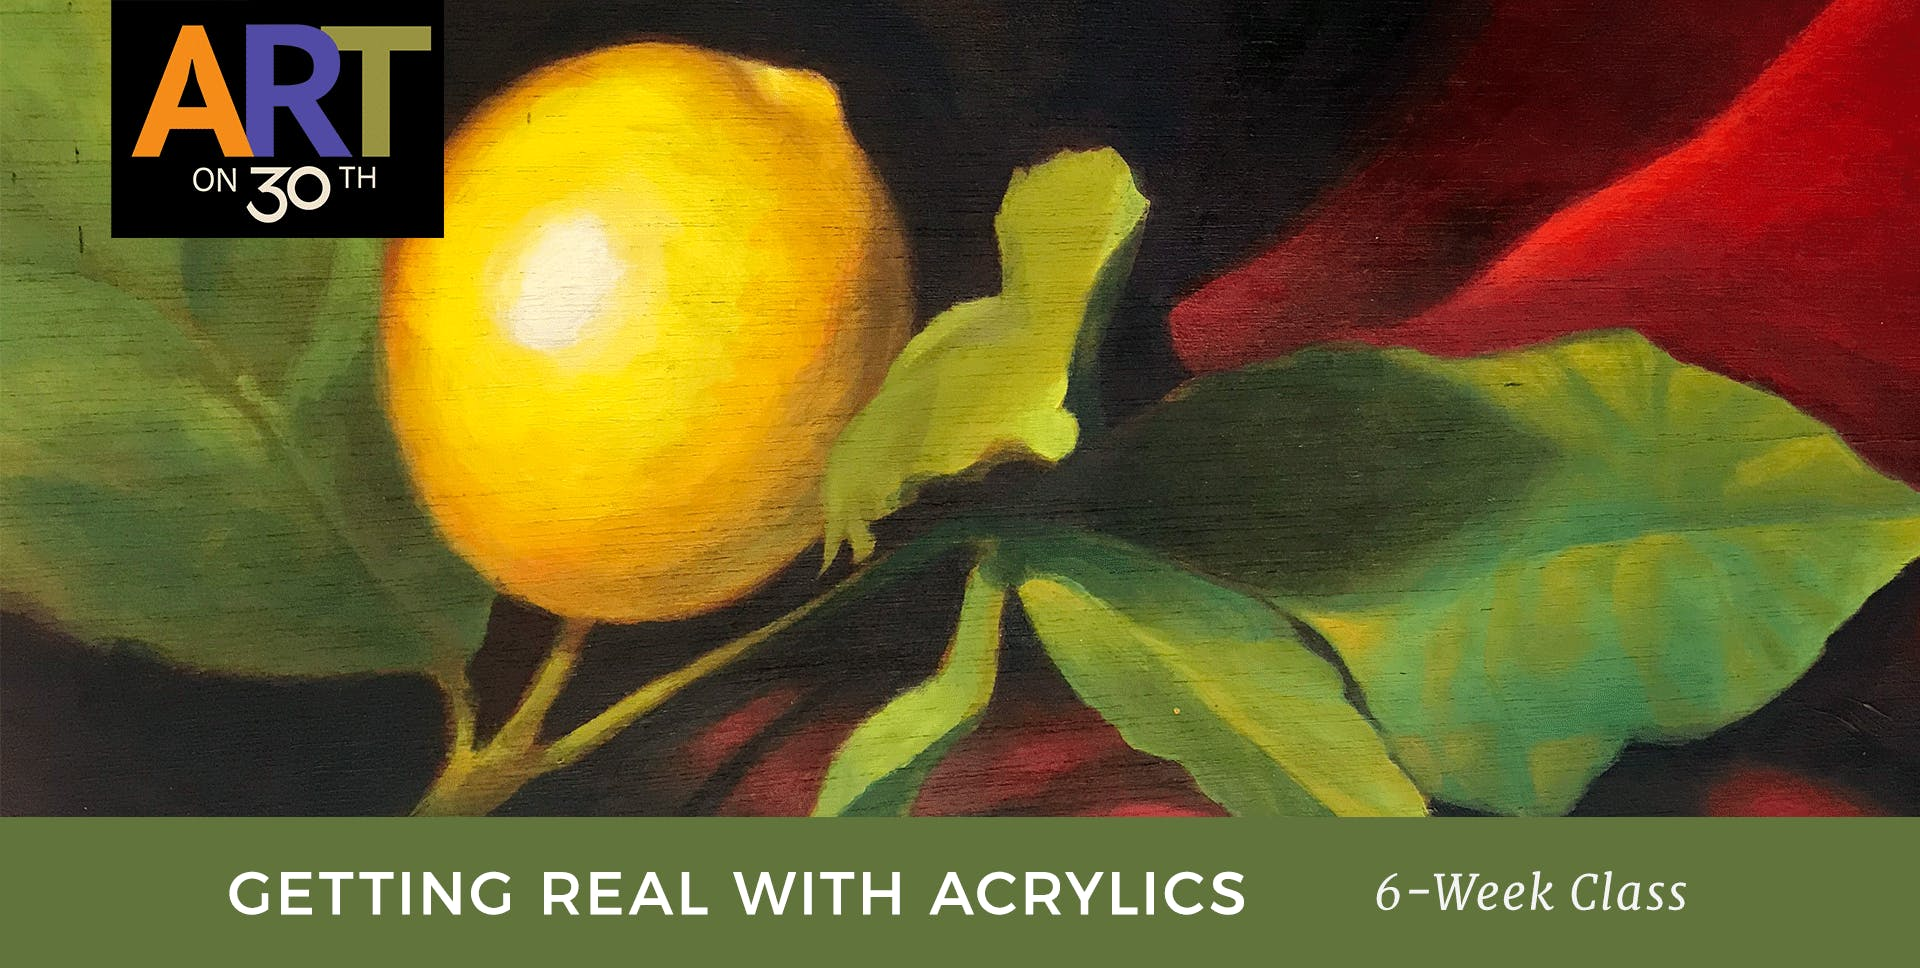 WED - Getting Real with Acrylics with instructor Chuck McPherson